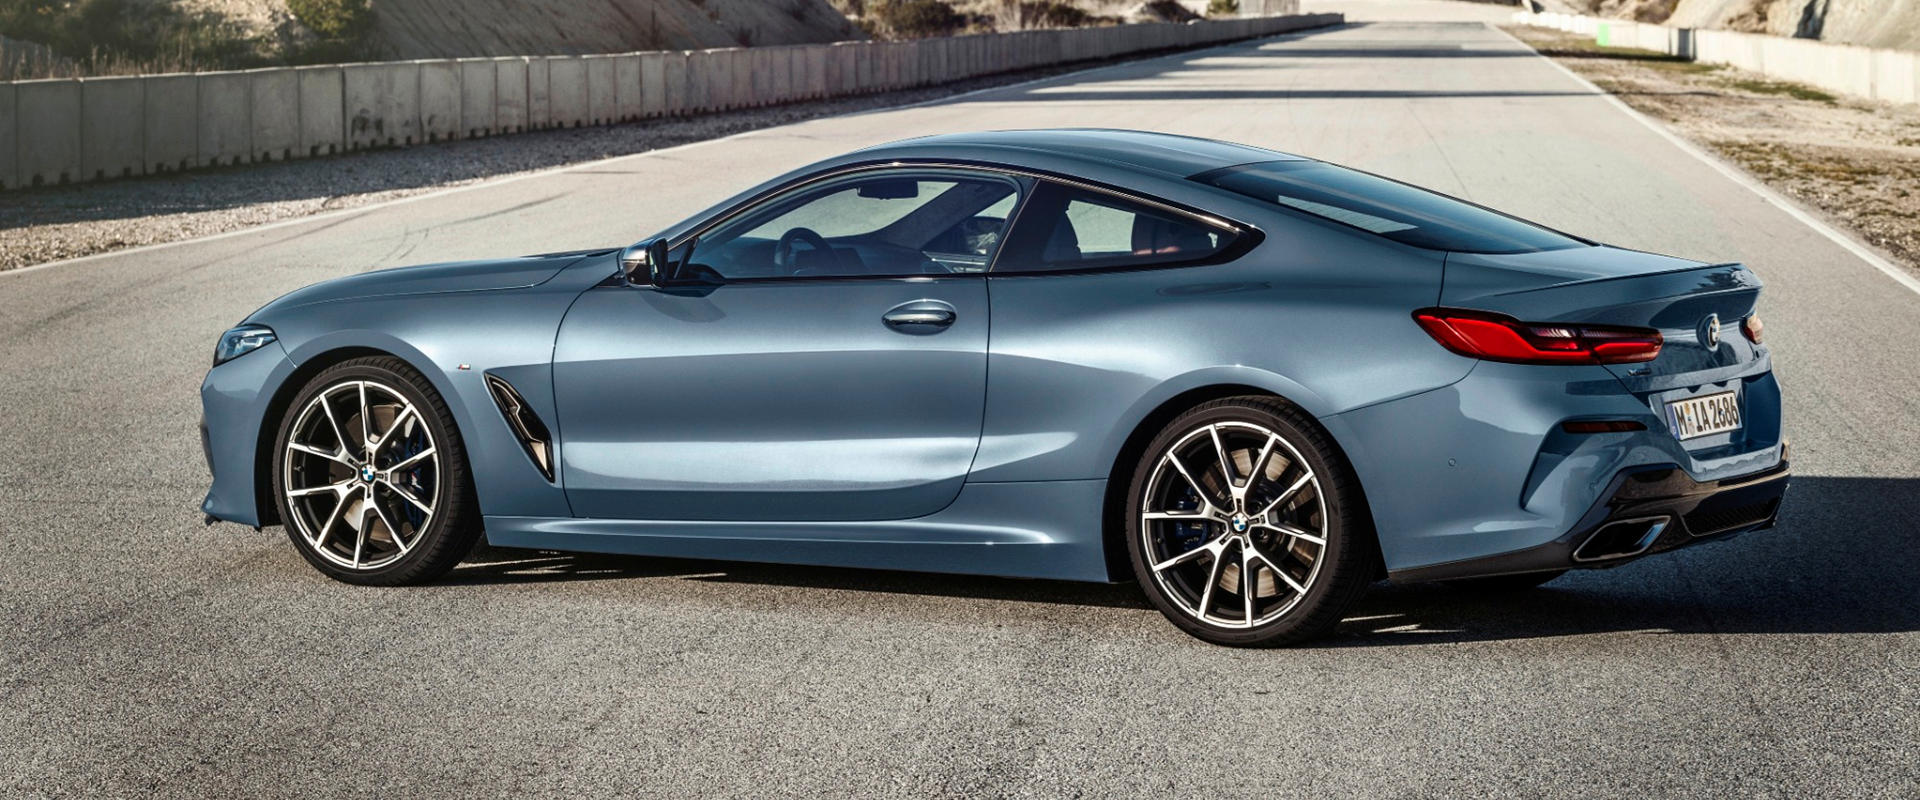 Can't Afford The 2019 BMW 8 Series? Here Are 8 Cheaper